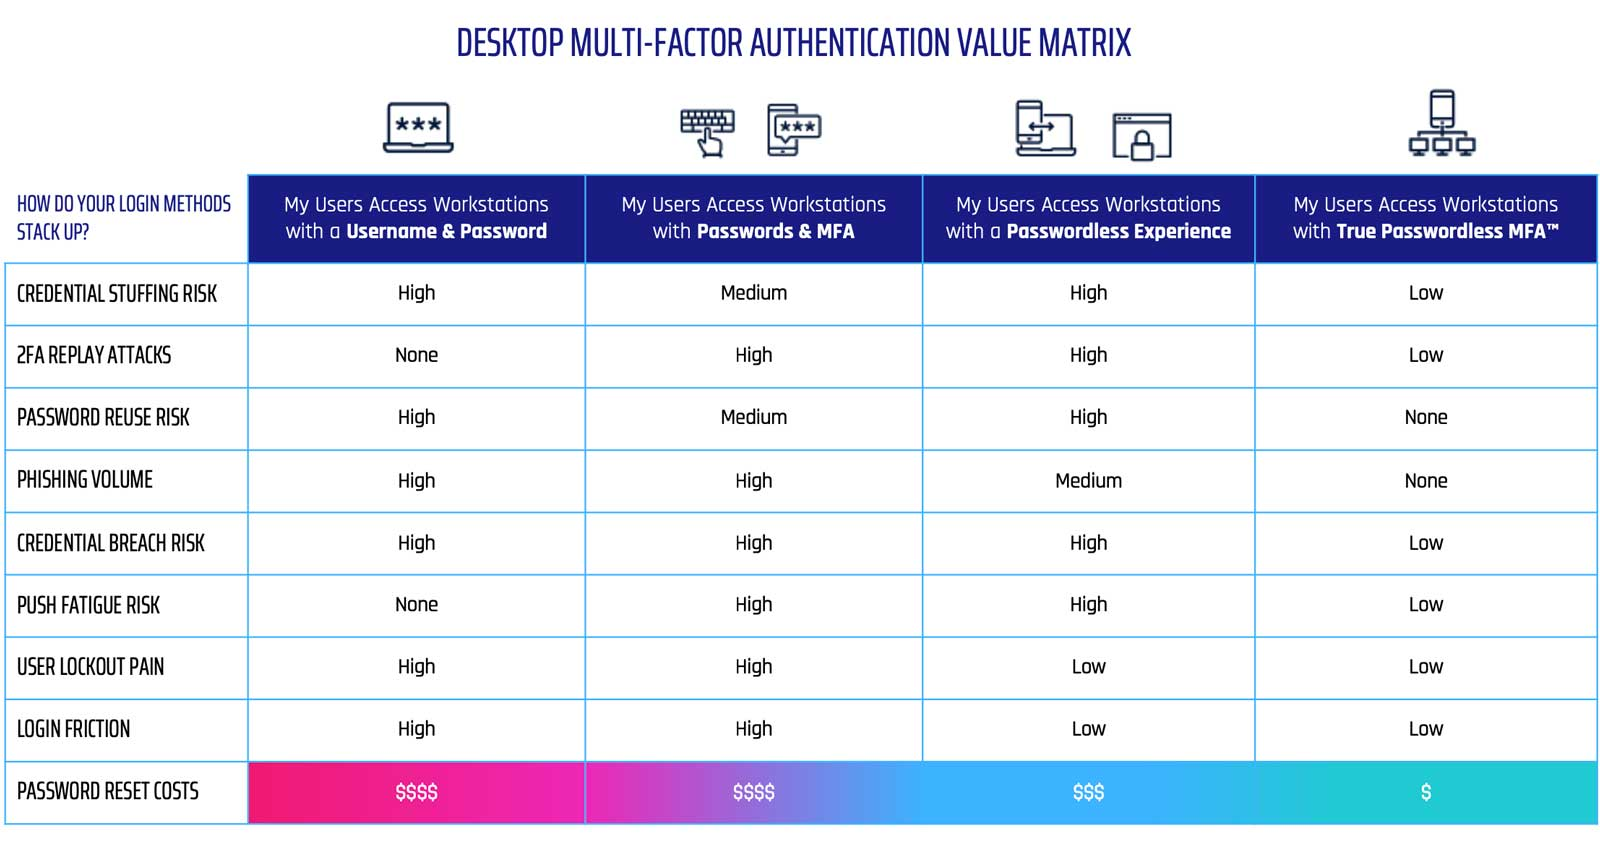 Desktop MFA Value Matrix